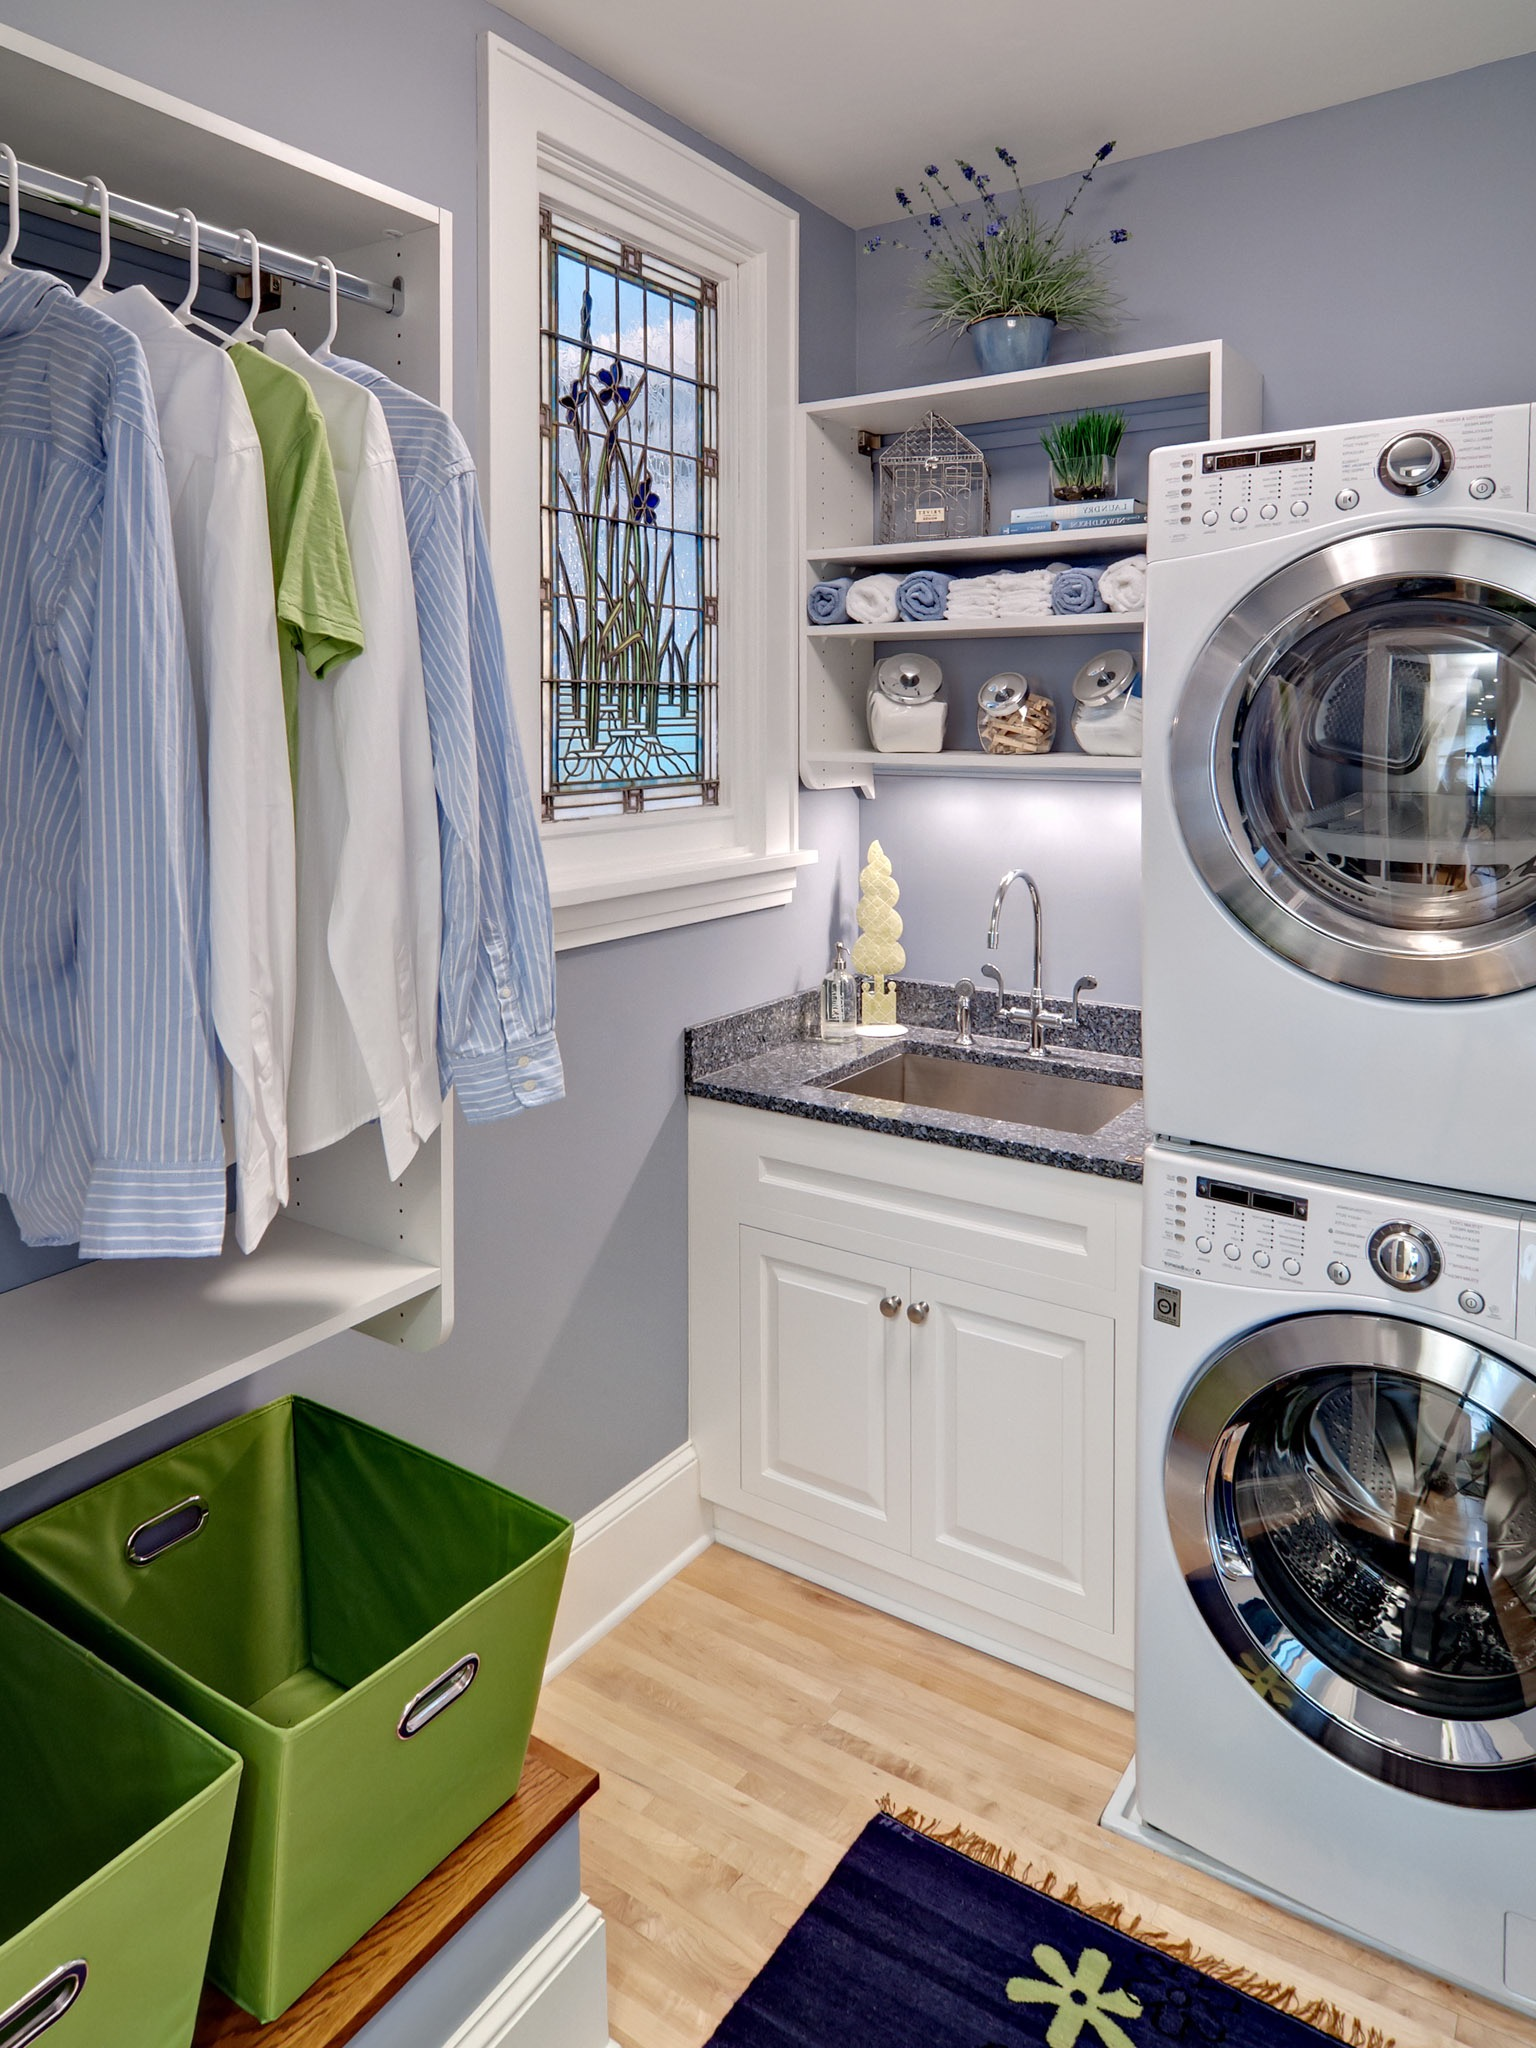 Small Modern Laundry Room For Apartment Interior (Image 18 of 26)